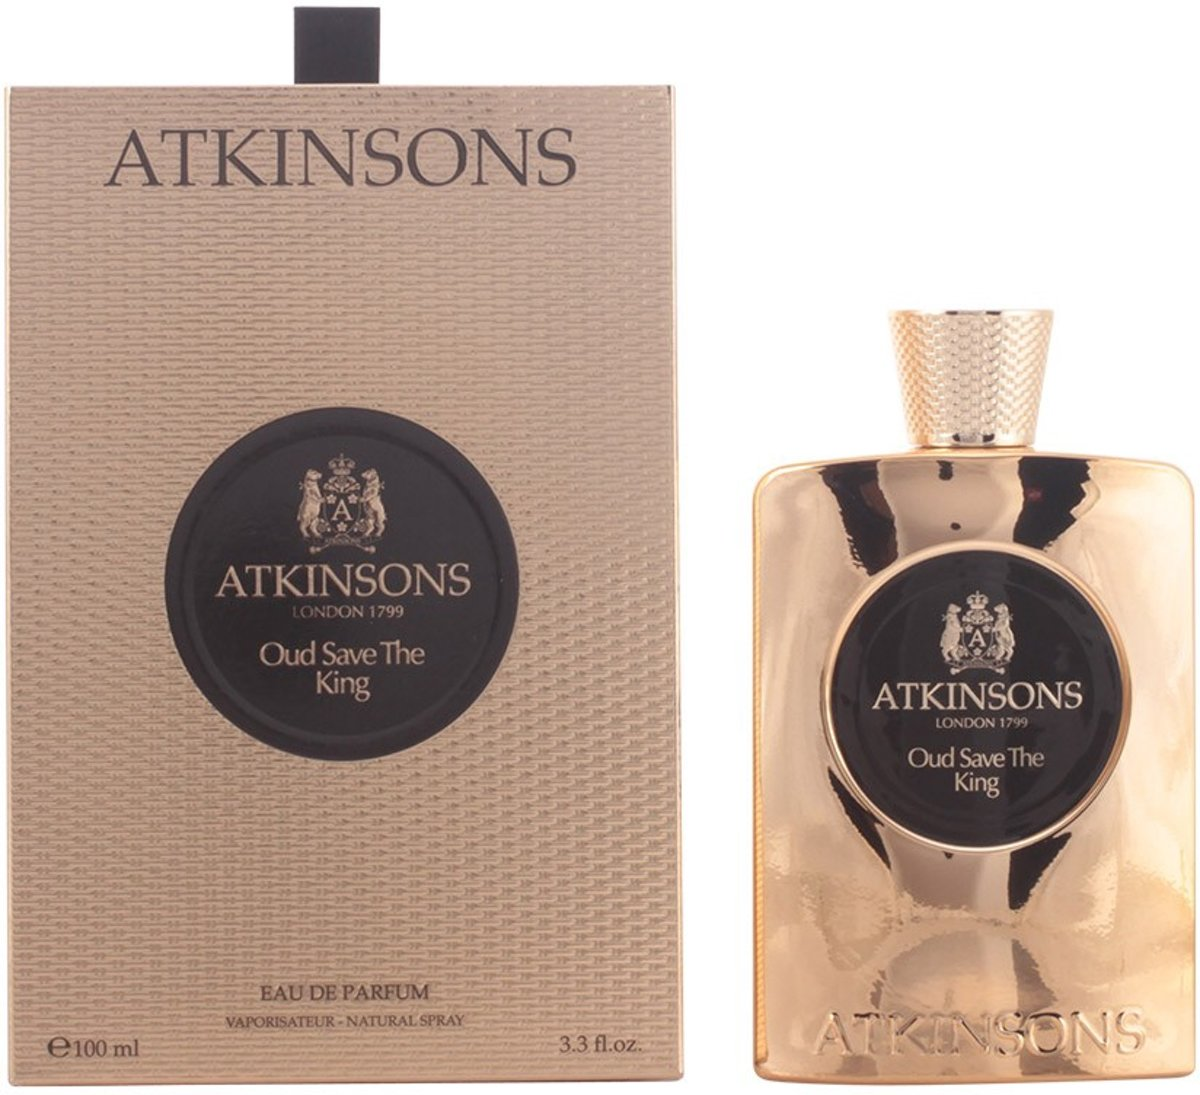 Atkinsons - OUD SAVE THE KING - eau de parfum - 100 ml